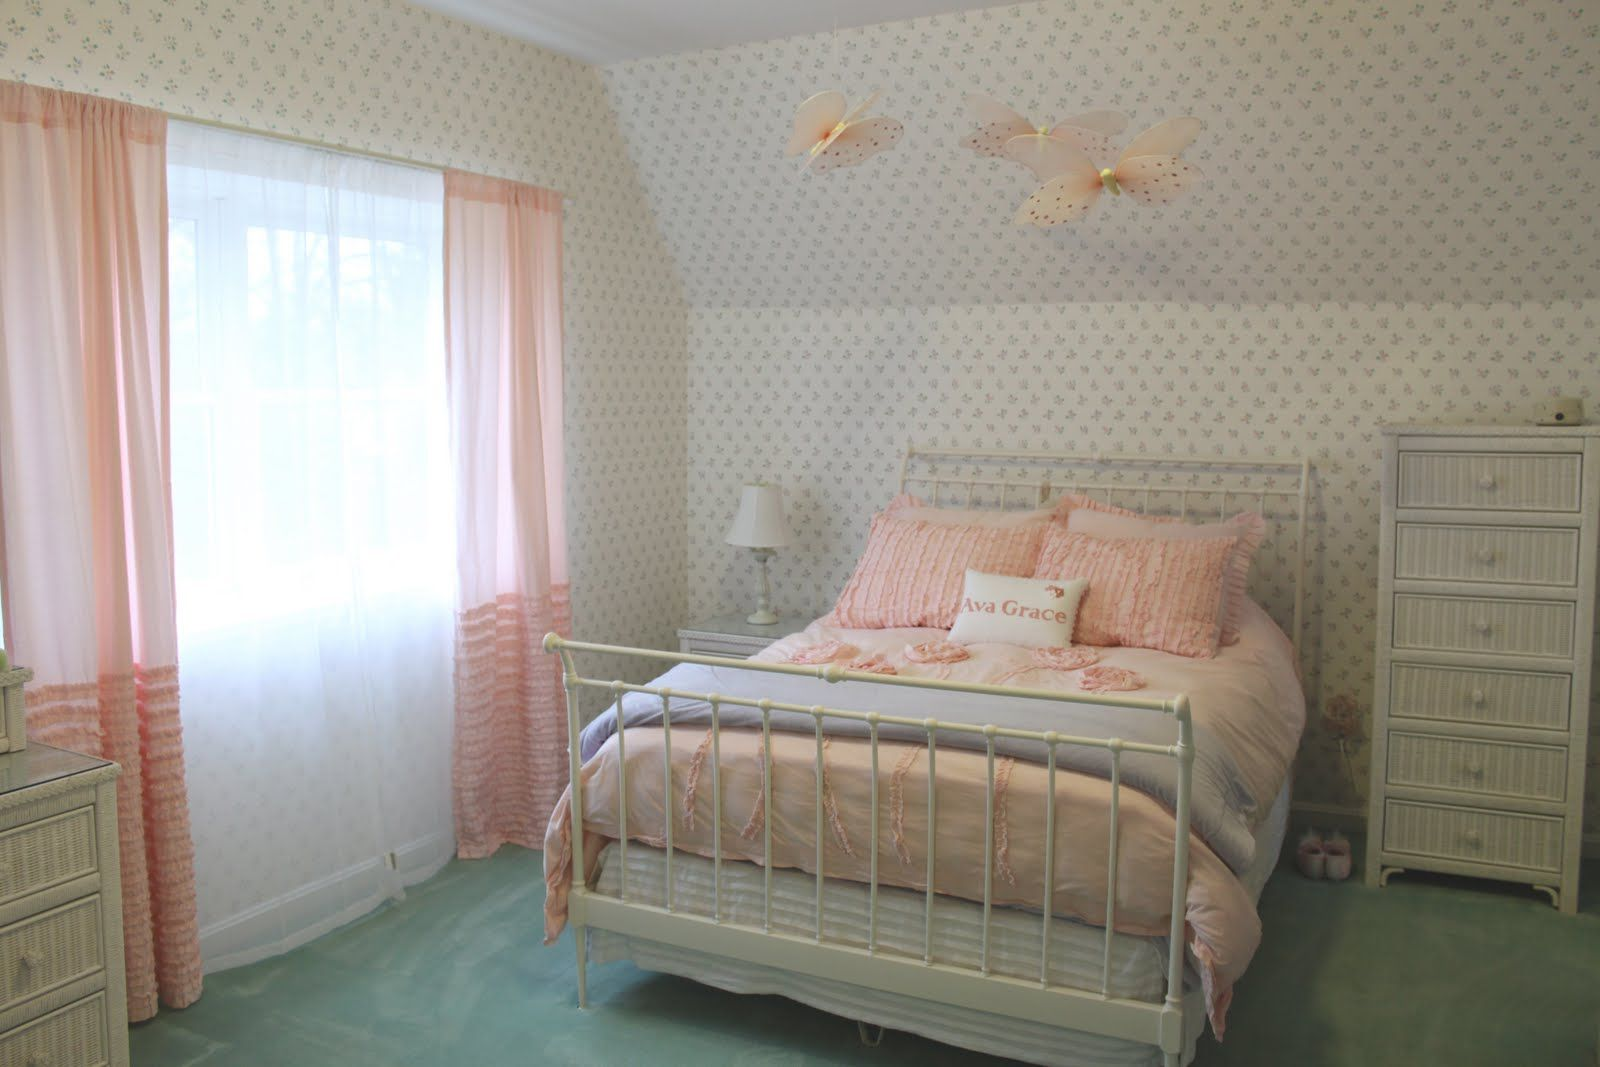 Wonderful Bedroom Designs In Peach And White Color : Beautiful Peach and White Bedroom Design with Minimalist Iron Single Size Bed and Peach Transparent Curtain also Butterfly Hanging Ornament